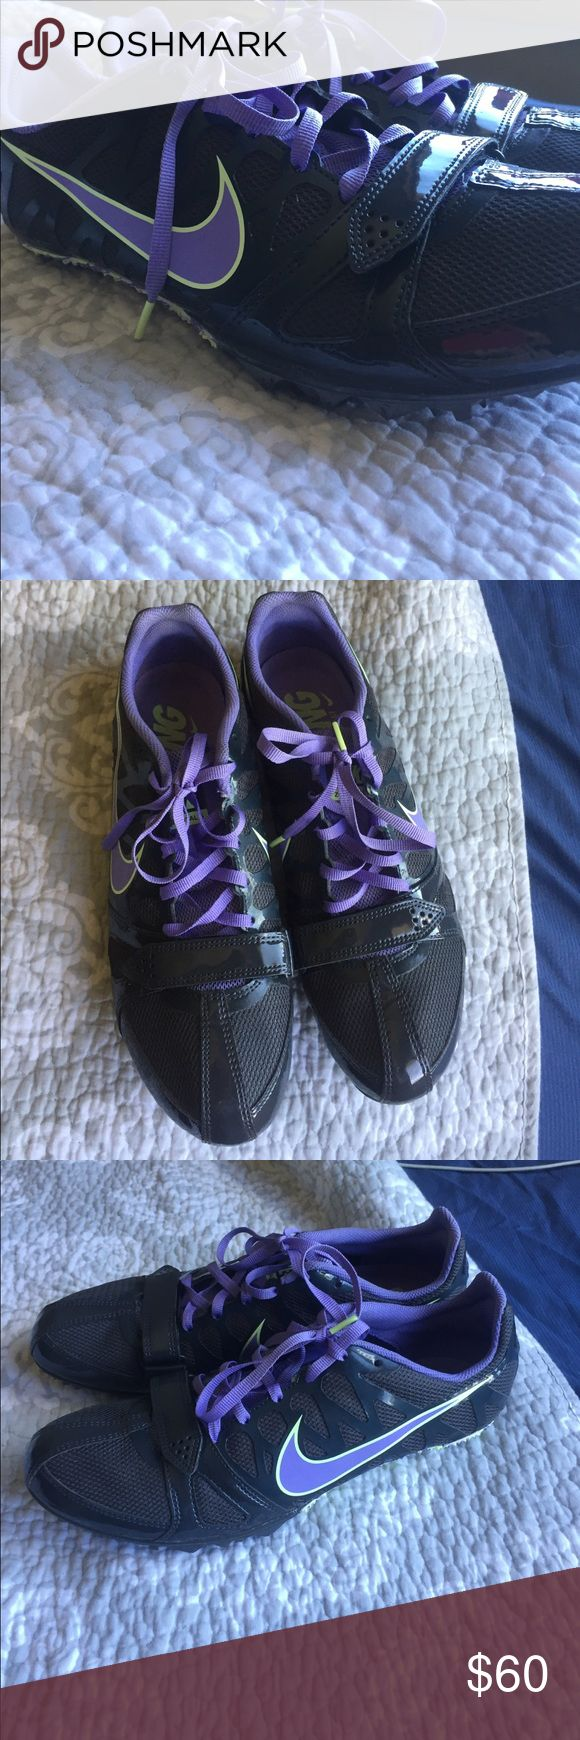 Nike Size 10 sprinter sneakers These are black green and purple size 10 Nike track and Field sprinter shoes. They do not have spikes in them, and I do not have any extra to give out. They do come with the appliance to remove the spike. These shoes are for sprinting track and field. I wore them to 4 meets and that is all. Excellent condition. Please ask any questions! Nike Shoes Athletic Shoes